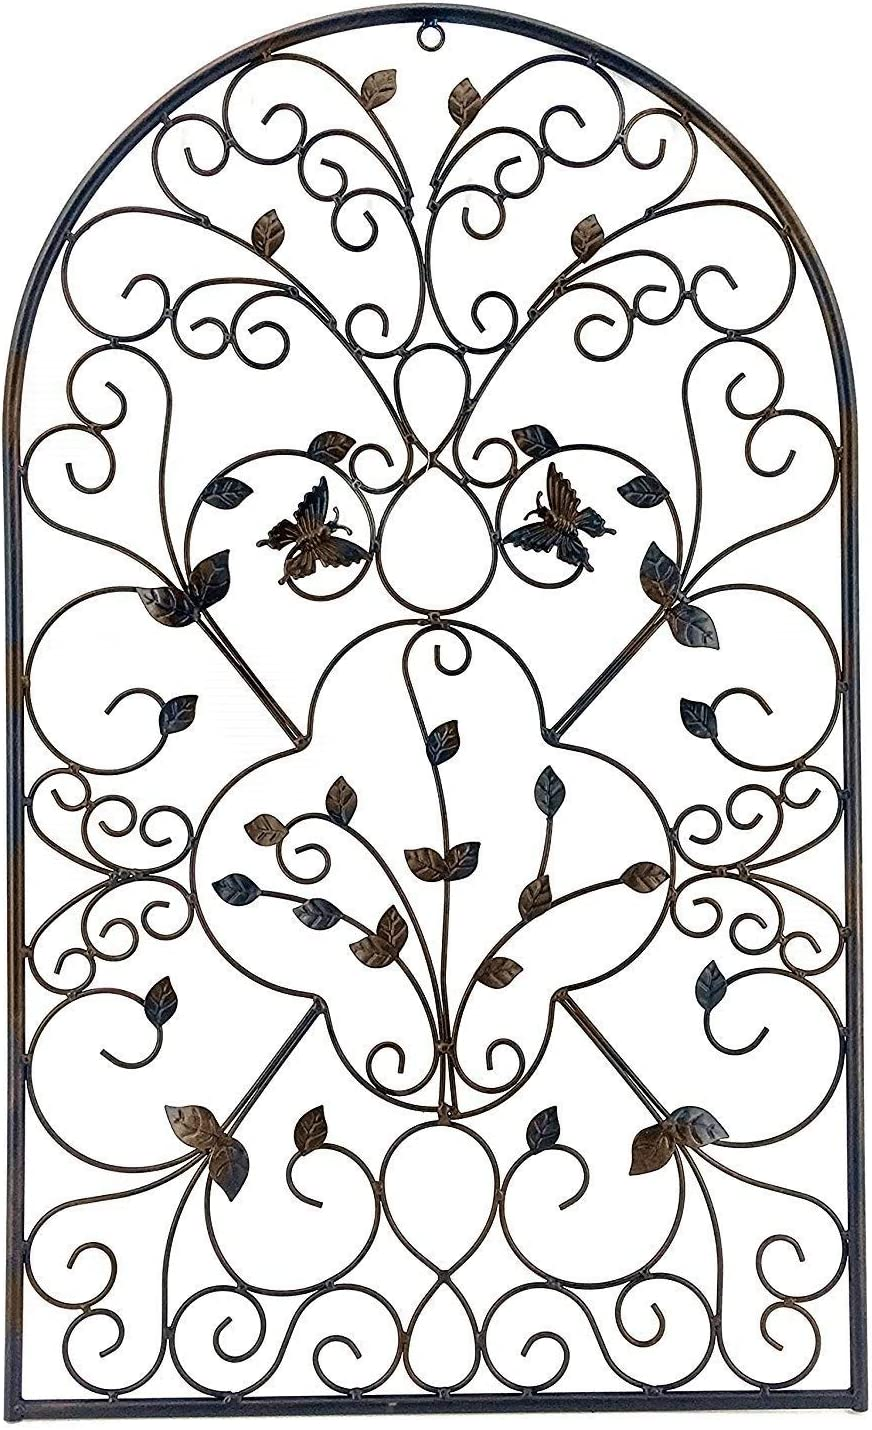 Bellaa 23196 Spanish Architectural Pattern Metal Wall Art Garden Plaque Butterfly 31 inch (Brown, Large)